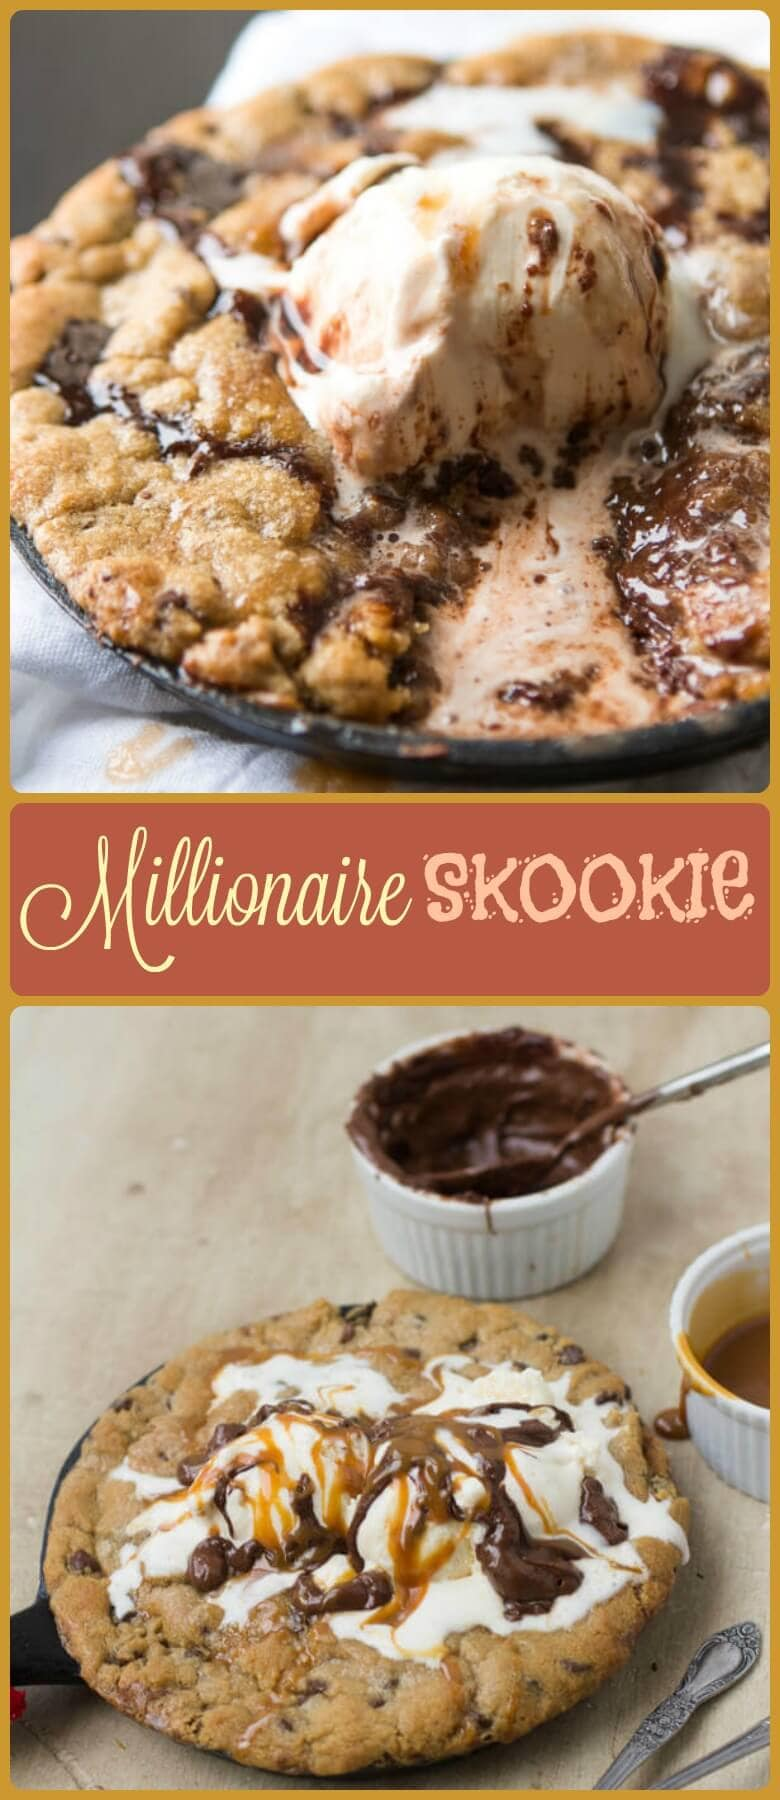 This millionaire skookie has a secret layer of nutella and dulce de leche under the cookie that would be worth millions if cookies were money.